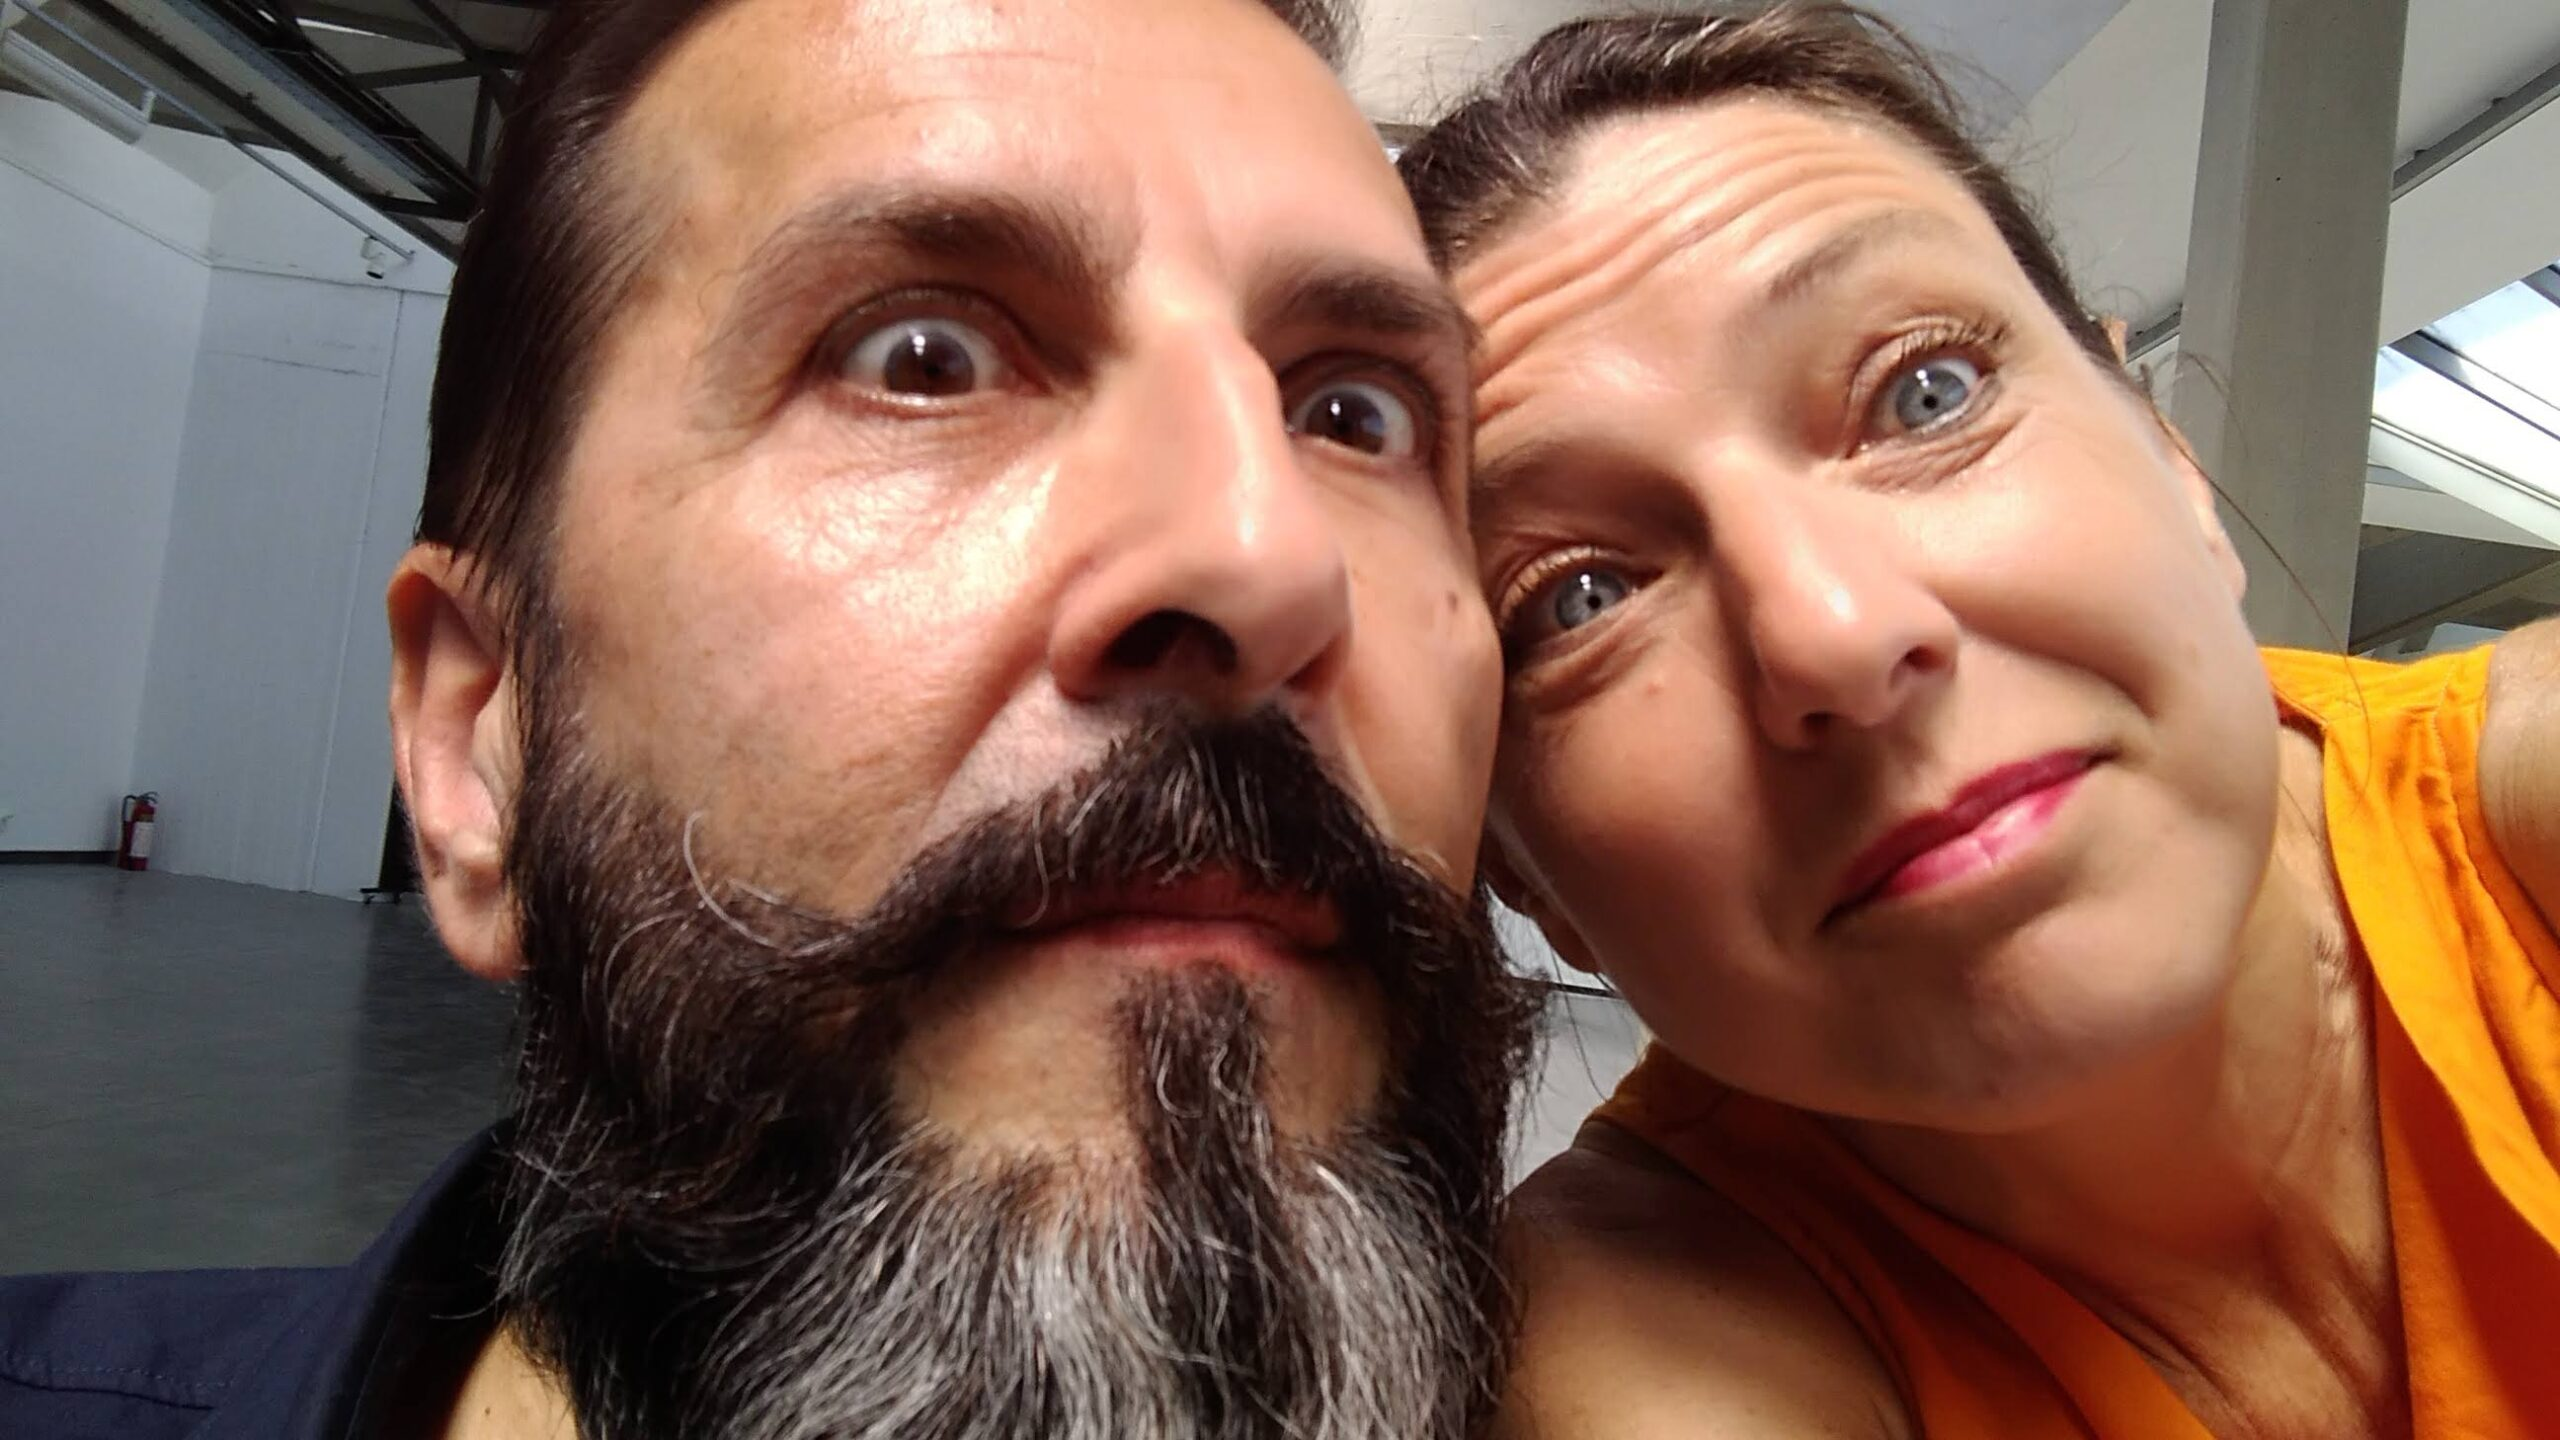 """Enzo Pellegrini and Anna Maria Piccoli of MuLab caught by surprise in an """"unofficial"""" shot during the final event of the EU Project Talent Matching Europe at the MoCA (Musem of Contemporary Art) Skopje. Of course, the photo ended up on social media without approval."""